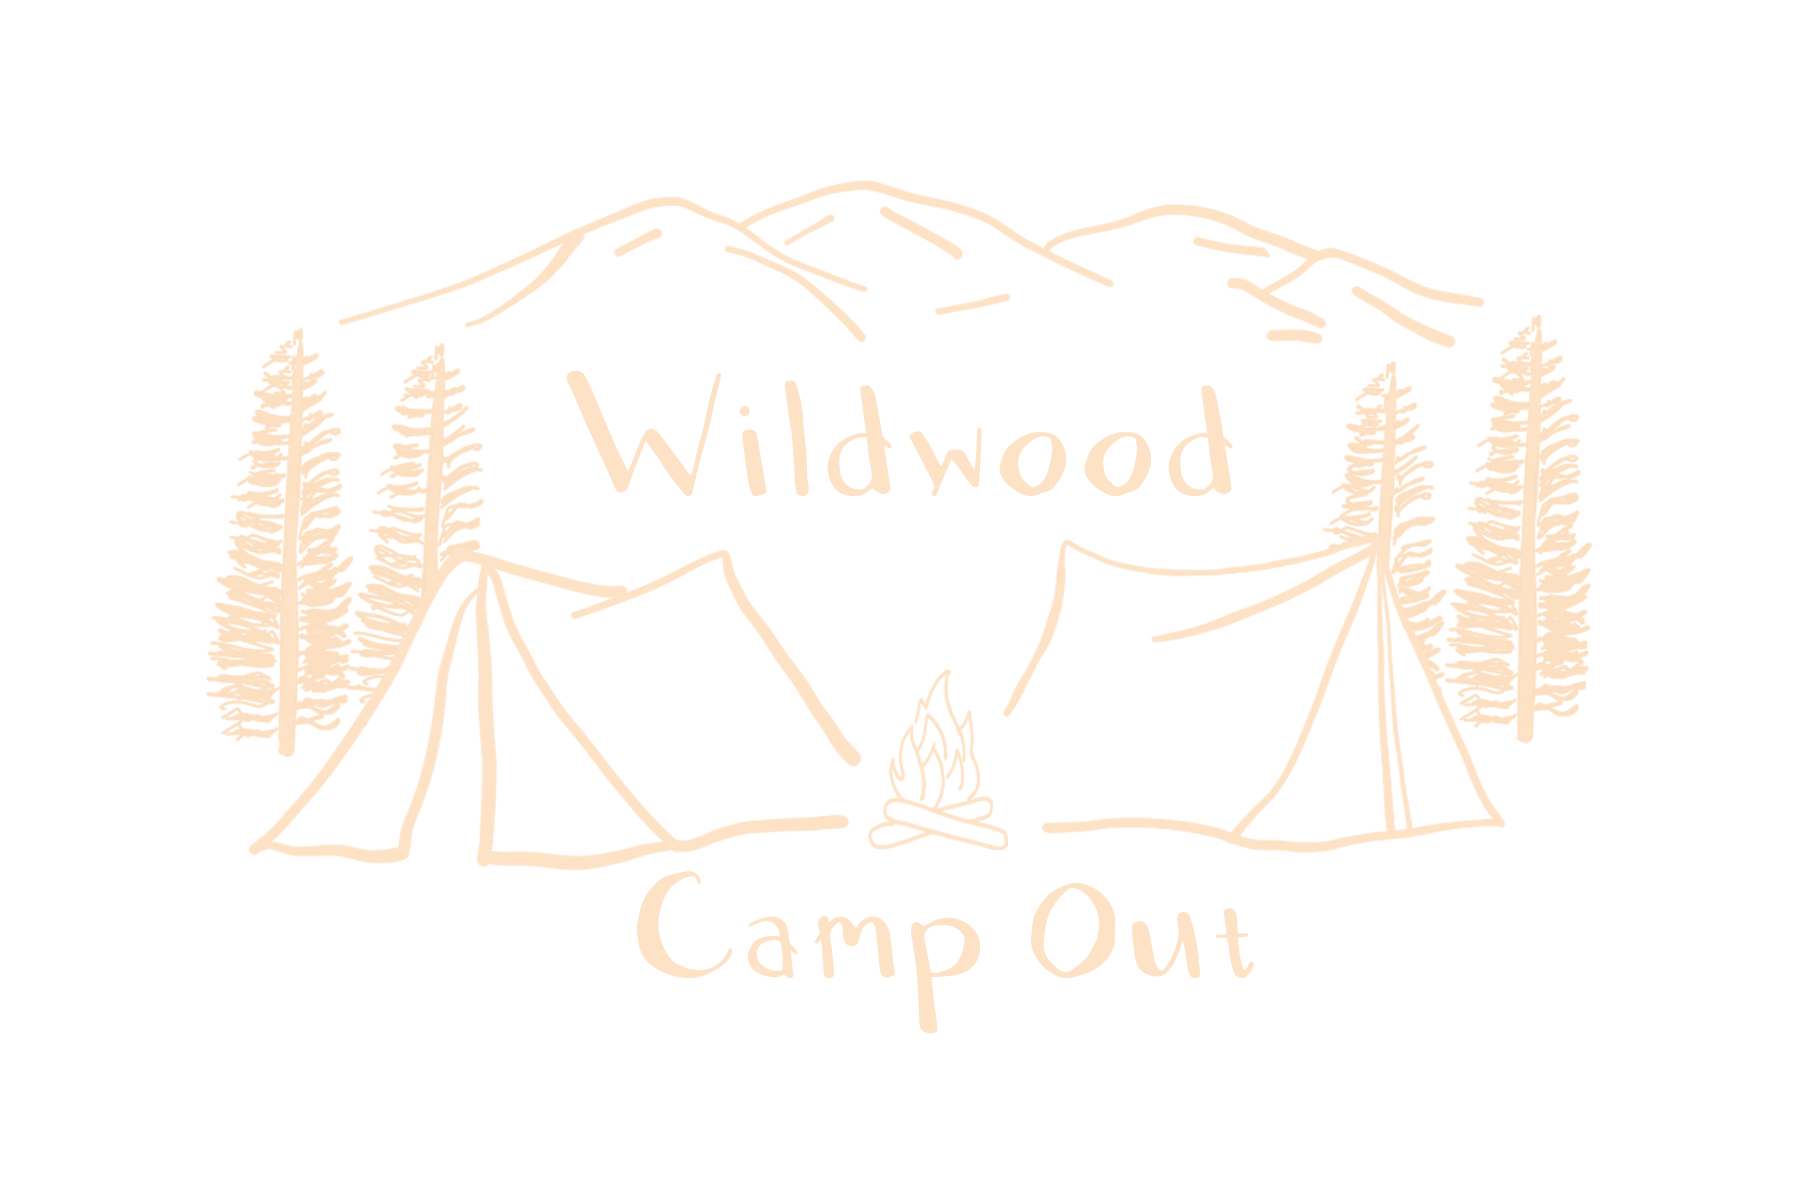 blackcamp out.png